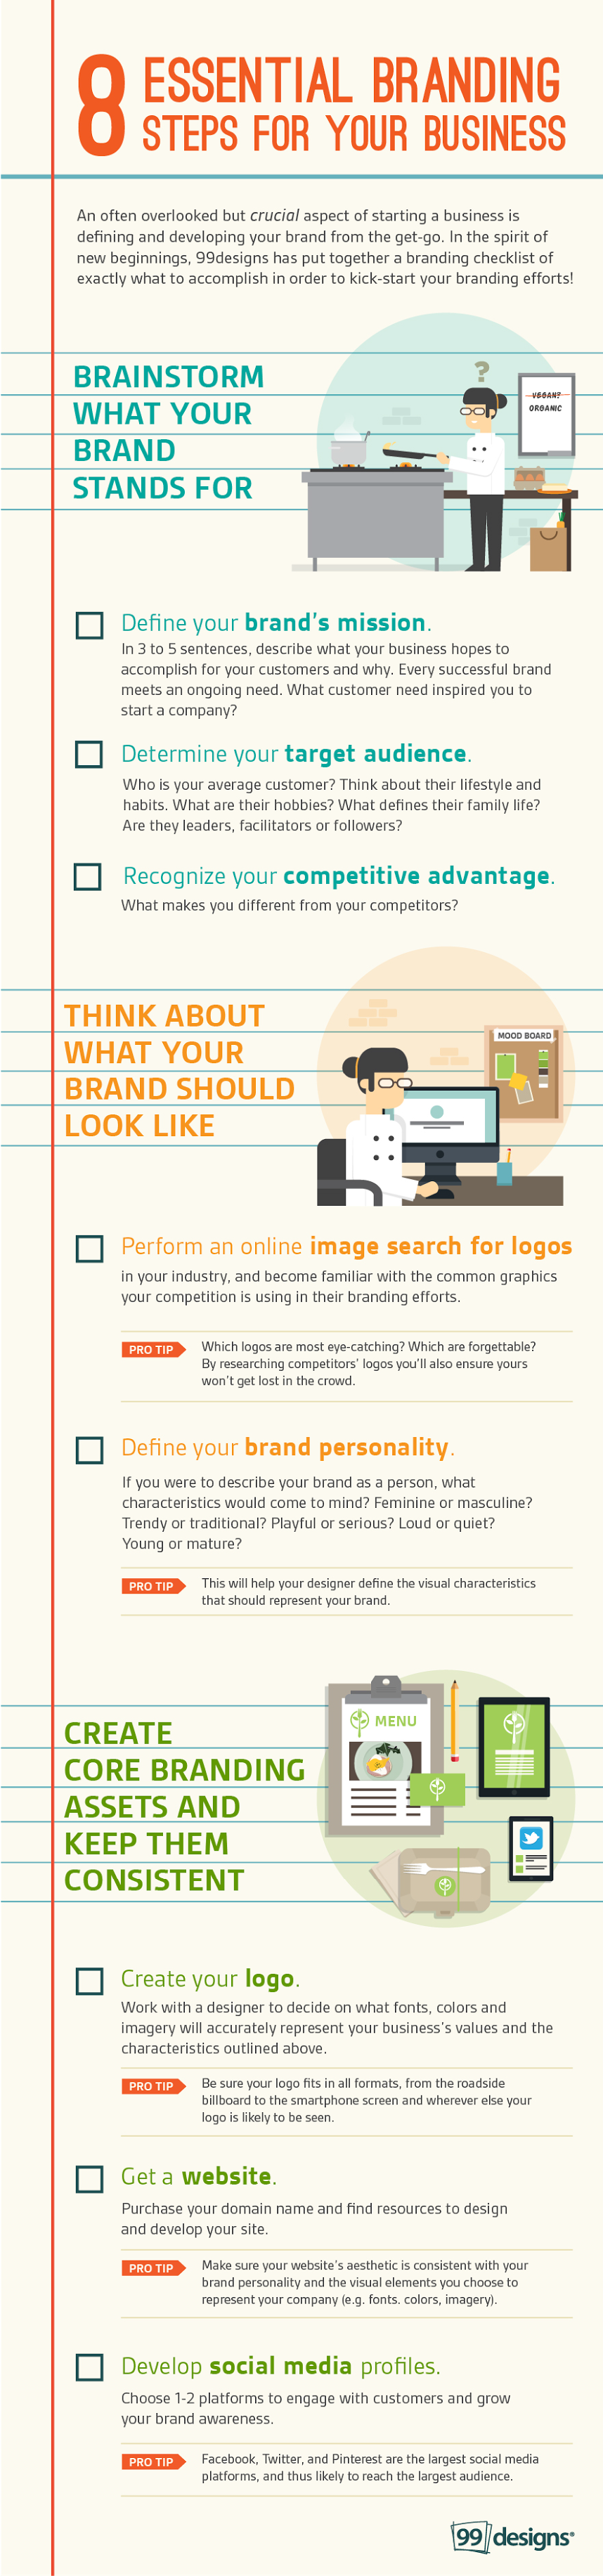 8 Essential Branding Steps For Your Business - #infographic